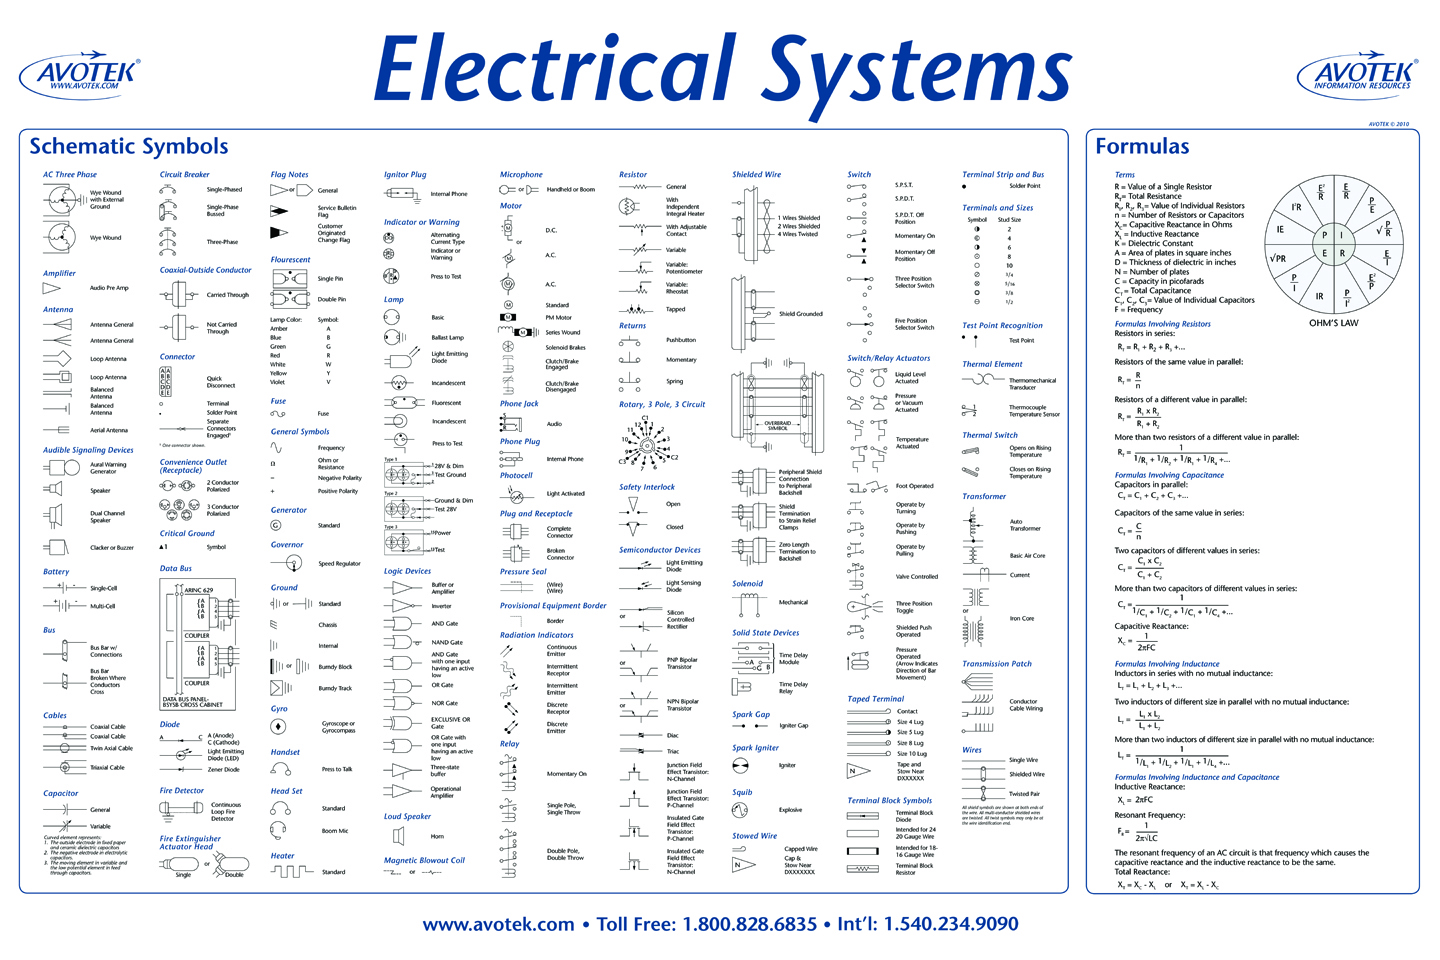 Aircraft Wiring Diagram Symbols For Dummies Explore Schematic Classroom Poster Electrical Systems Avotek Rh Com Modules